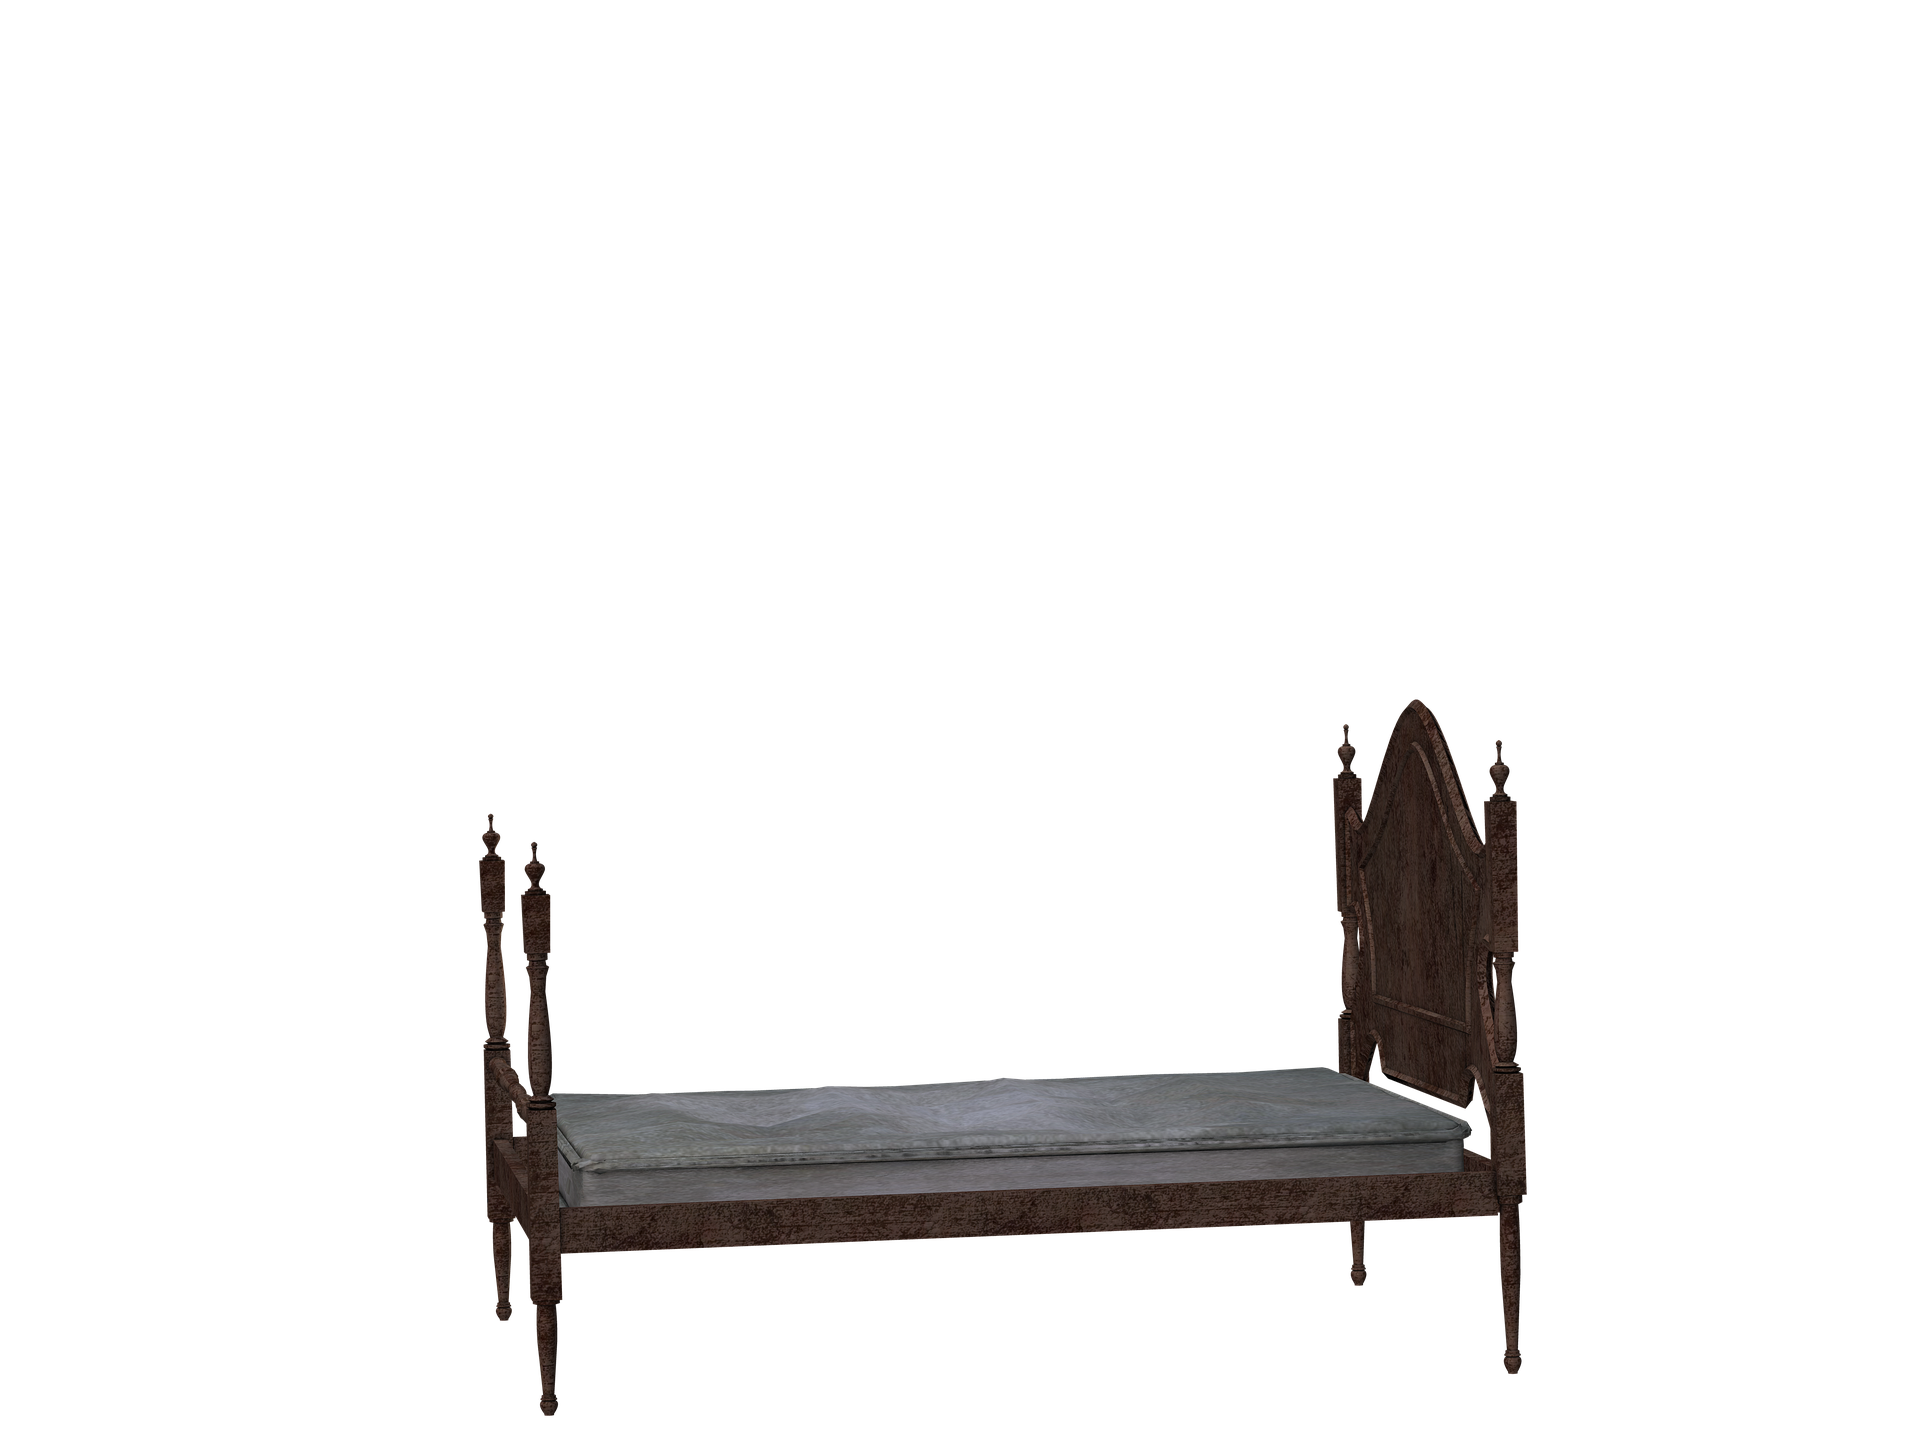 bed-1546001_1920